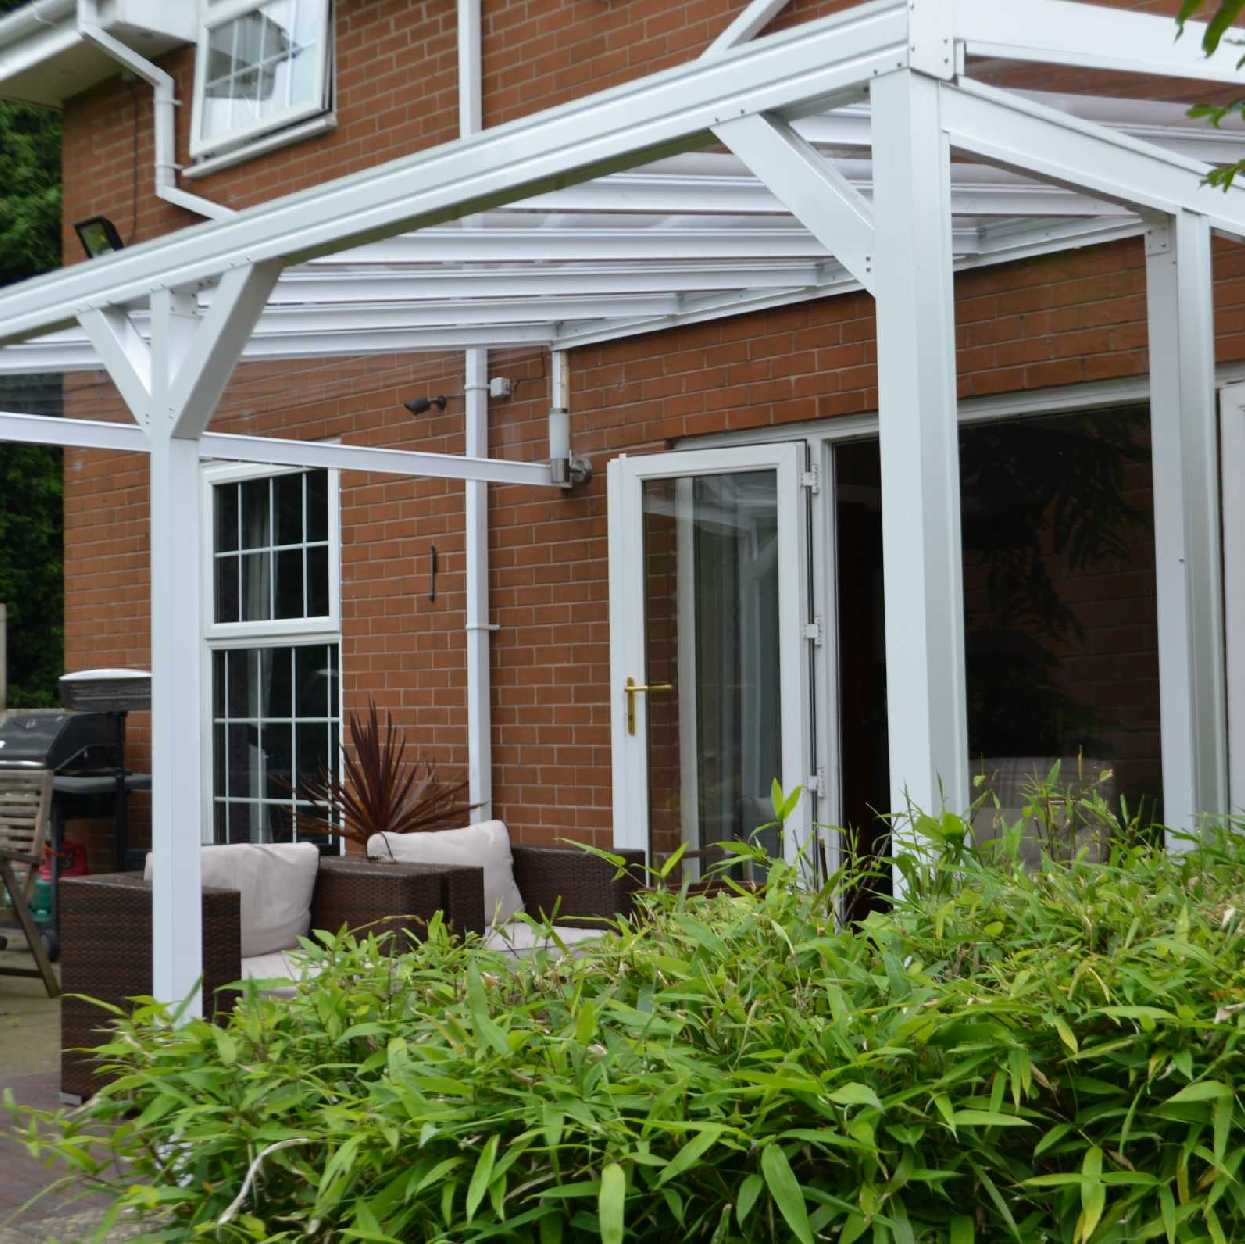 Omega Smart White Lean-To Canopy with 6mm Glass Clear Plate Polycarbonate Glazing - 2.1m (W) x 1.5m (P), (2) Supporting Posts from Omega Build